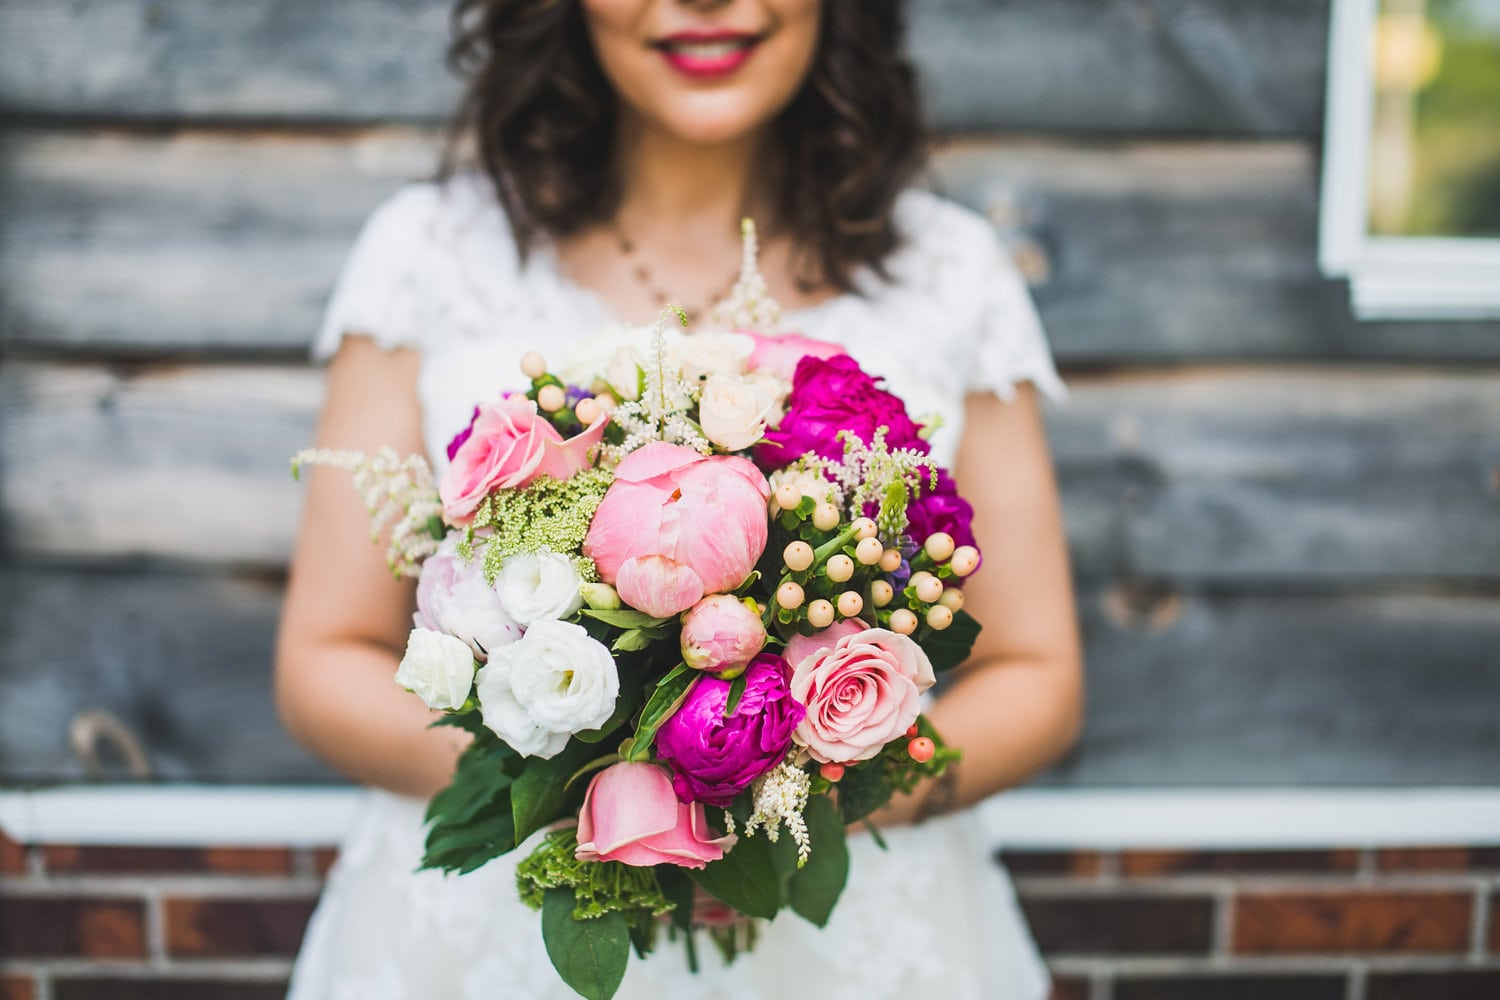 colorful bridal bouquet in shades of pink with wooden barn wall in the background during a country side wedding in quebec eastern twonships